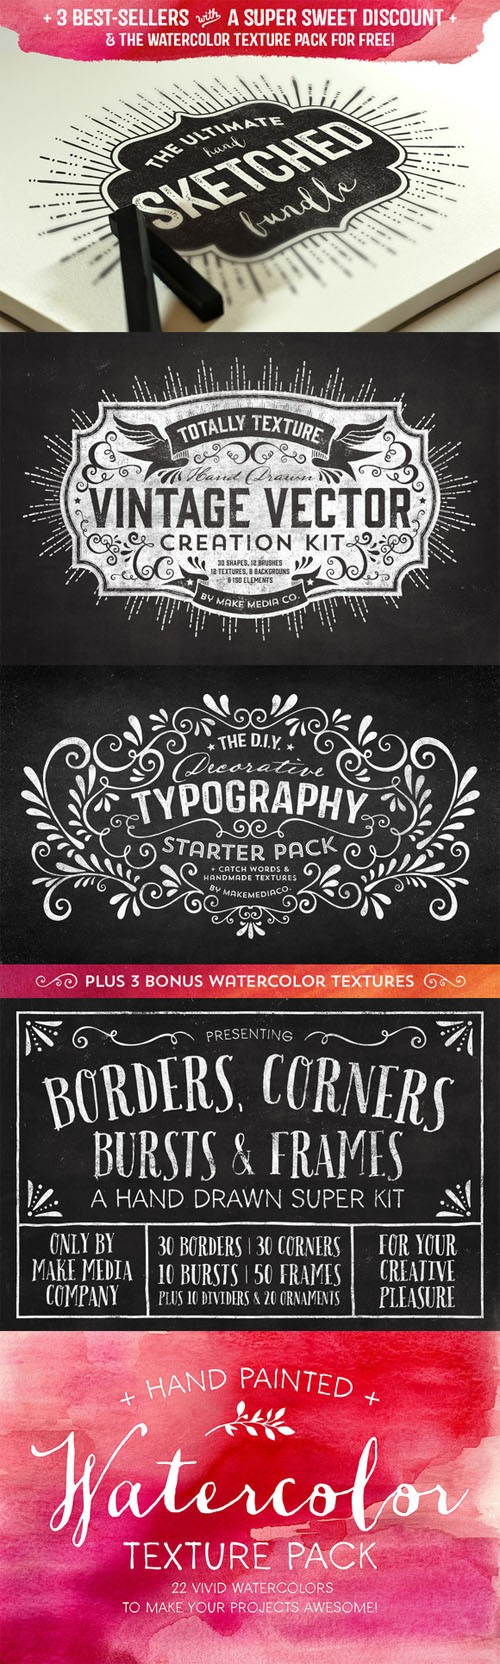 Creativemarket - The Ultimate Hand Sketched Bundle 75228